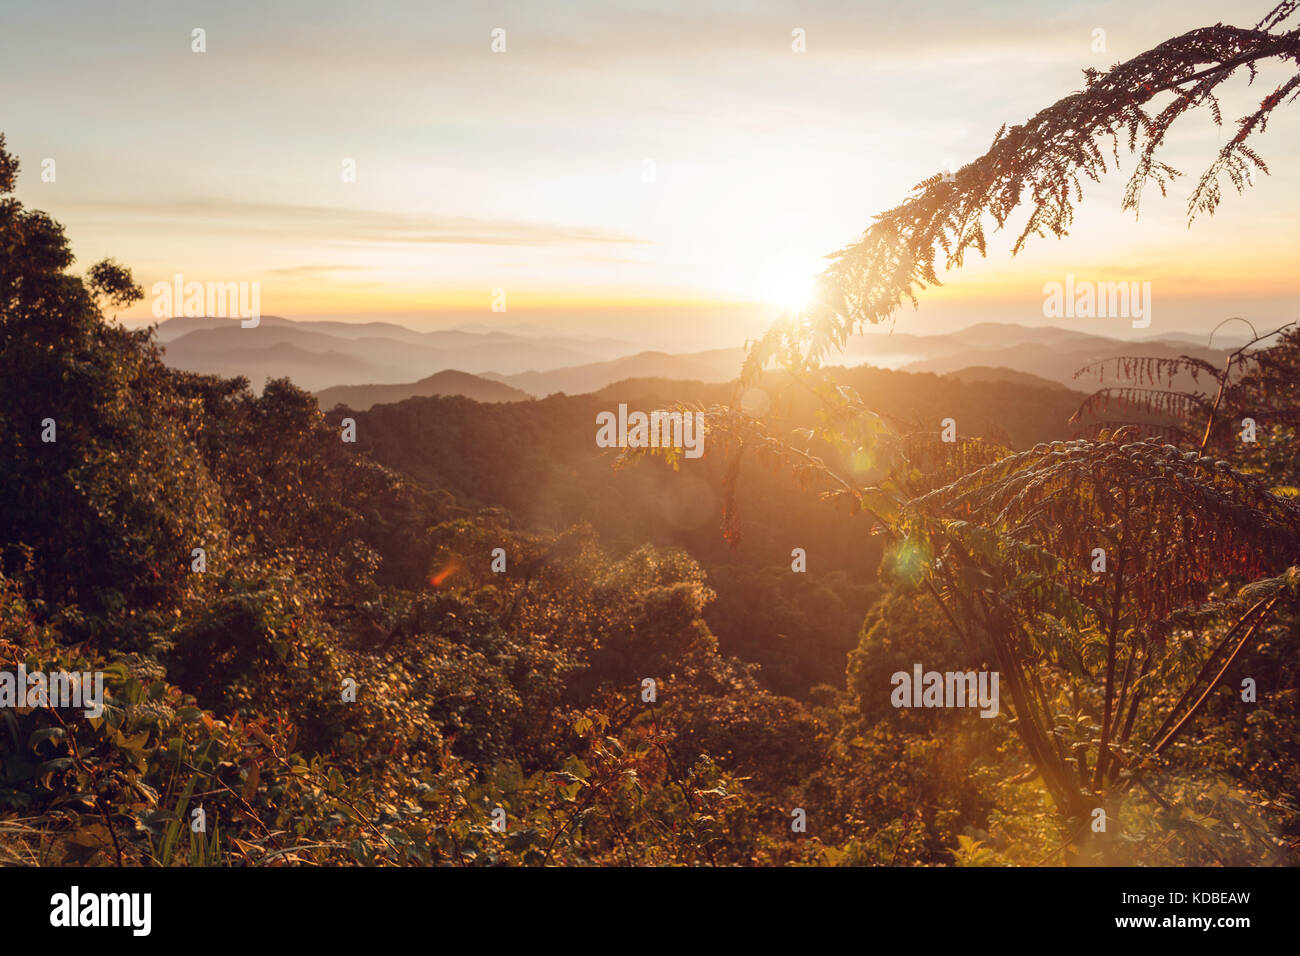 Warm Sunrise in a mountain area in Malaysia - Stock Image